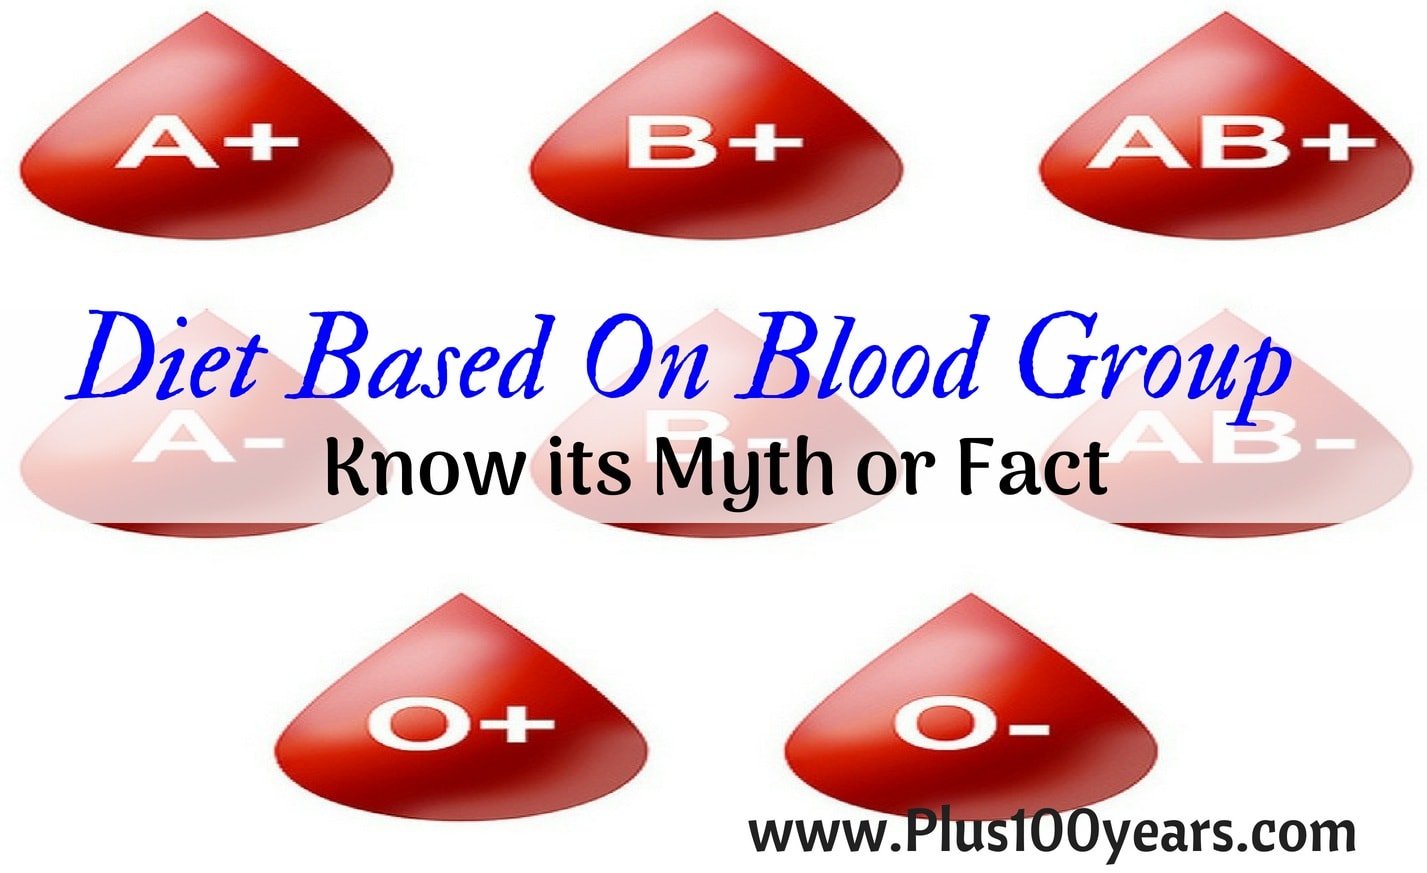 Diet Based On Blood Group - Know its Myth or Fact